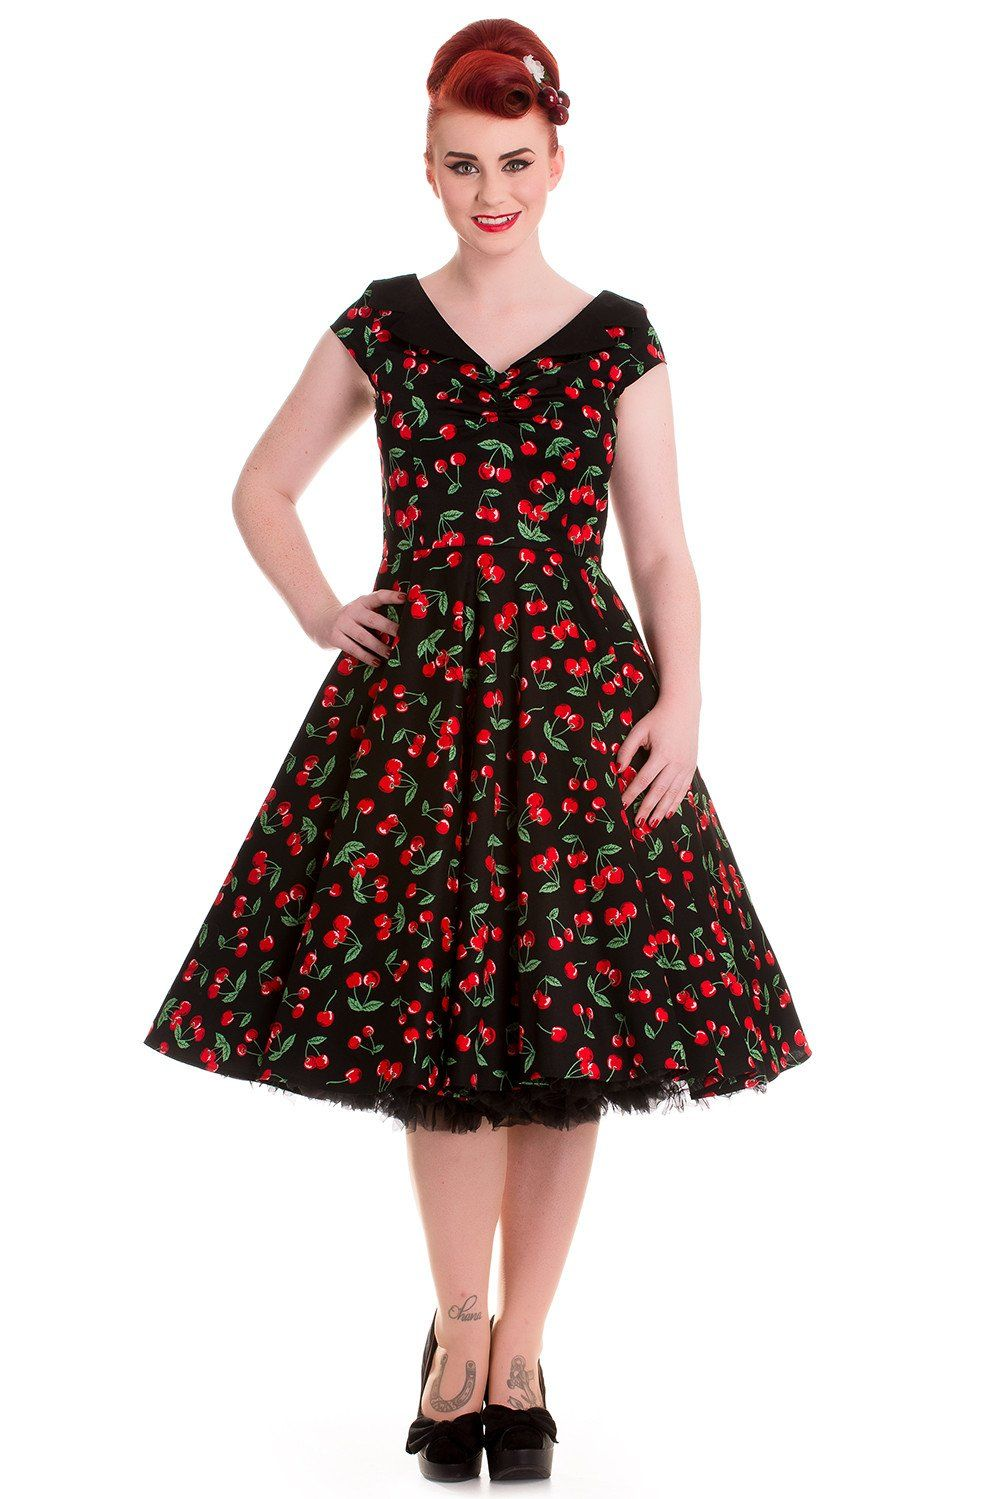 a66100bdb354 Hell Bunny Sweet Cherry Pop Cherry Love 50 s Pinup V-neck Flare ...